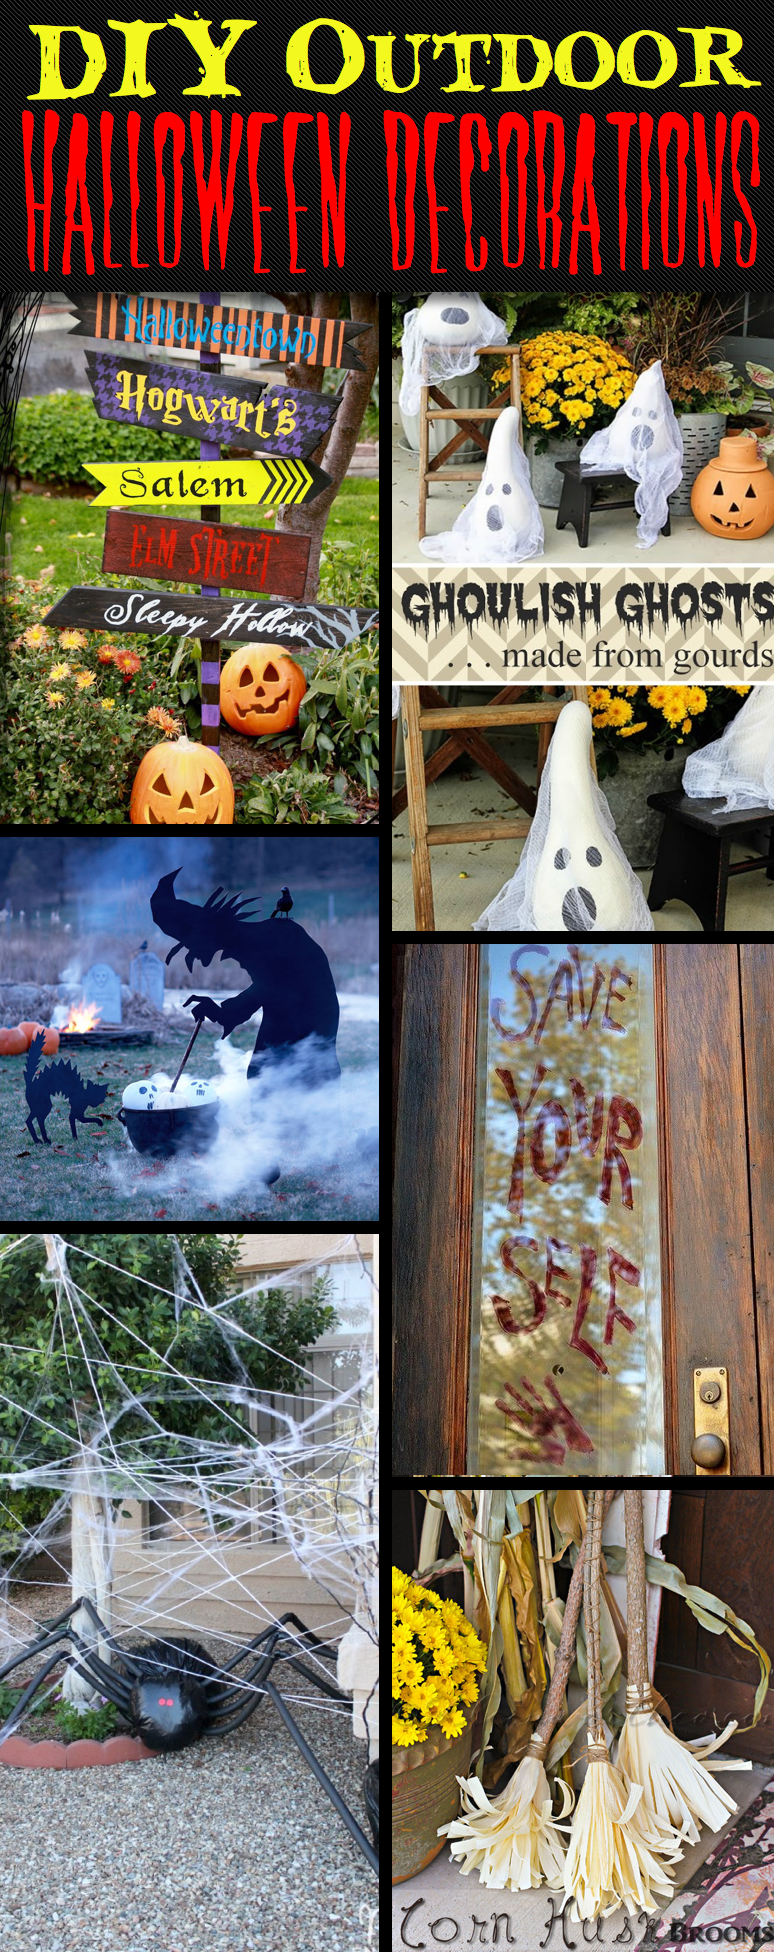 Diy outdoor halloween decor - 30 Astounding But Easy Diy Outdoor Halloween Decoration Ideas